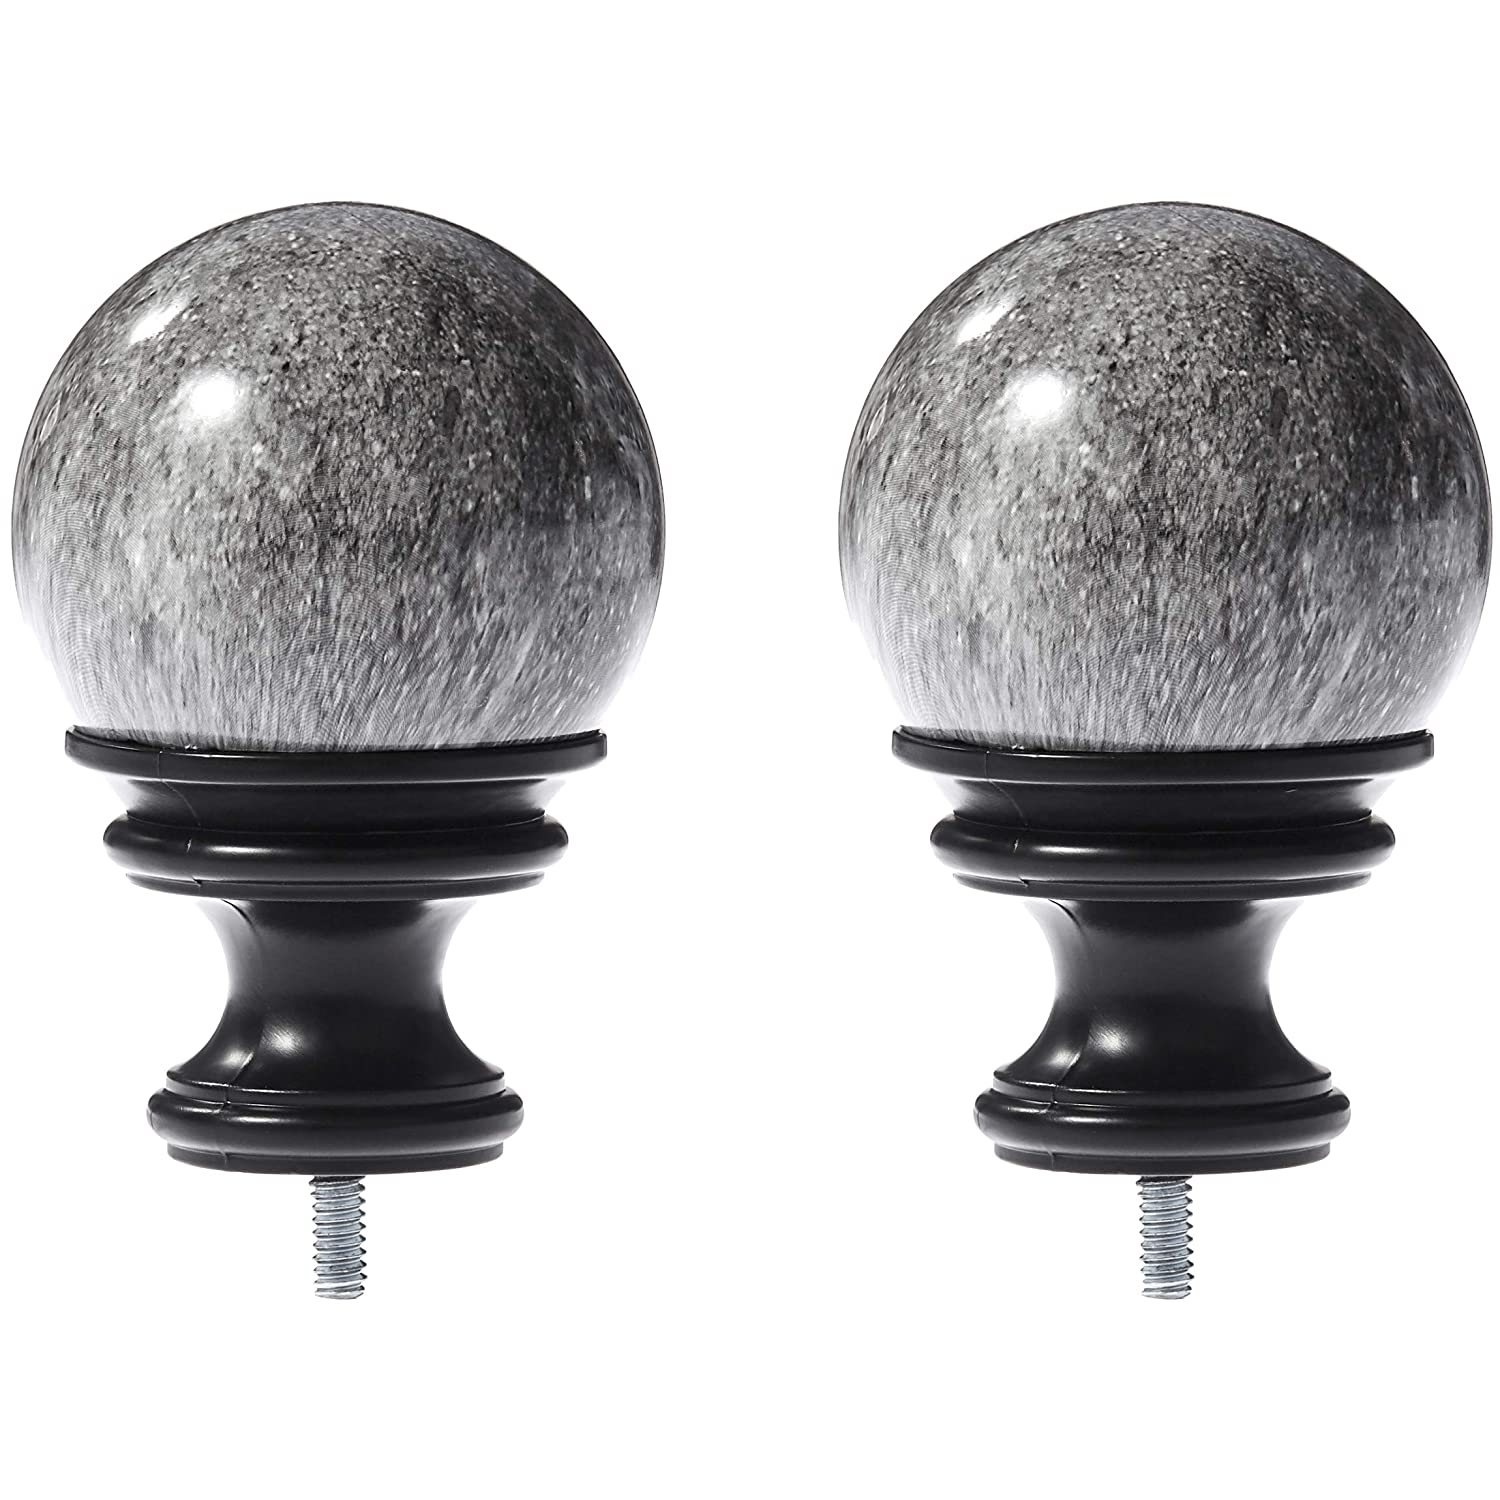 AmazonBasics Marble Ball Finial - Black